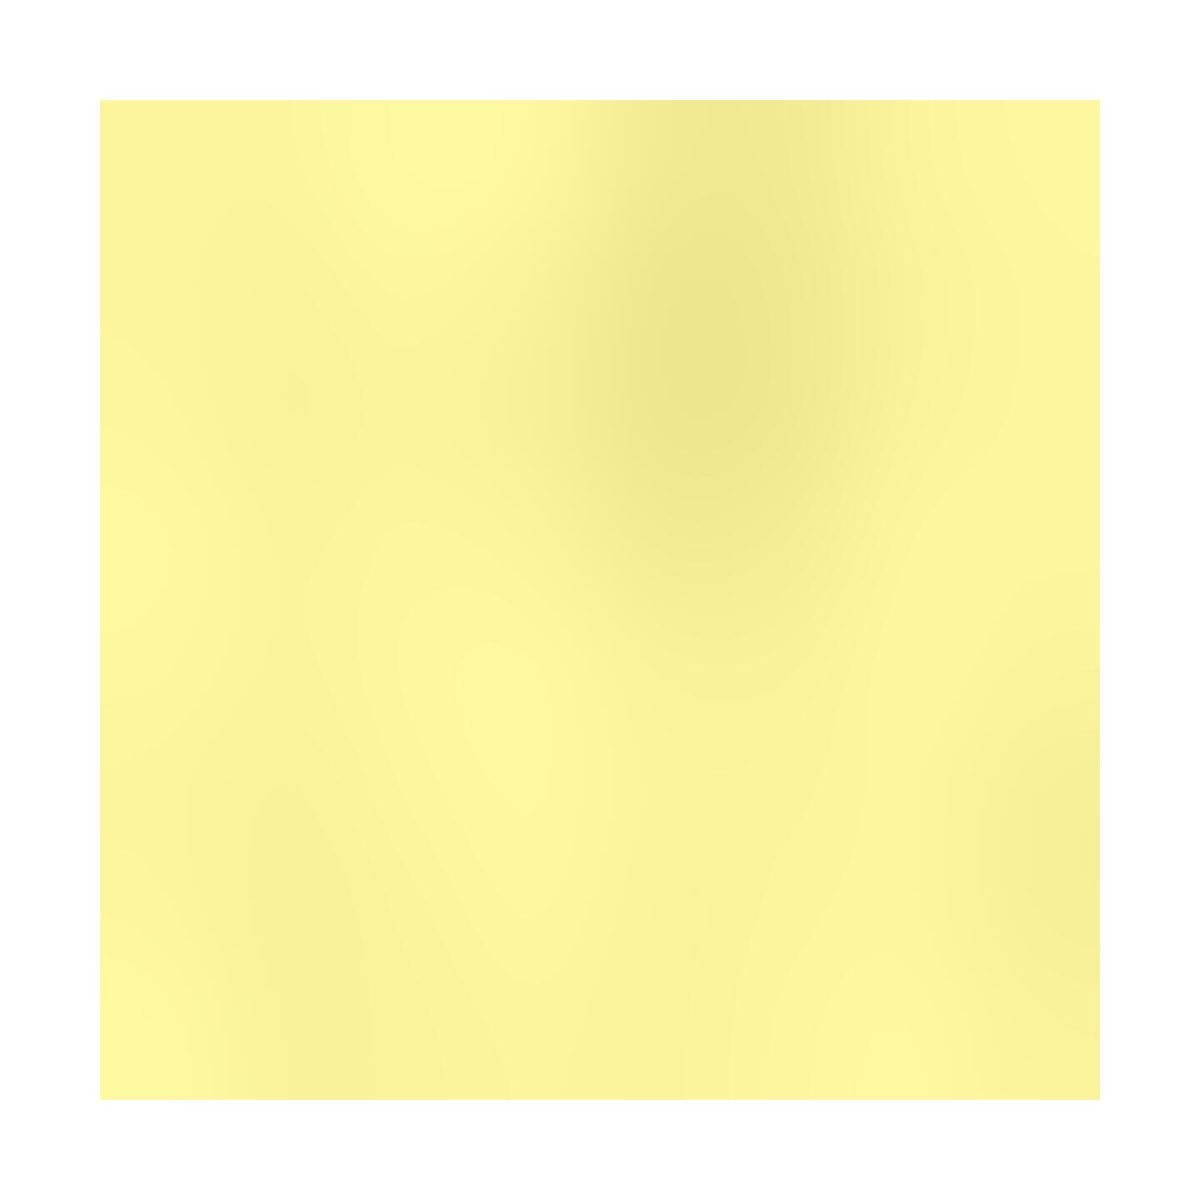 bd_backgrounds_193_light_yellow_02